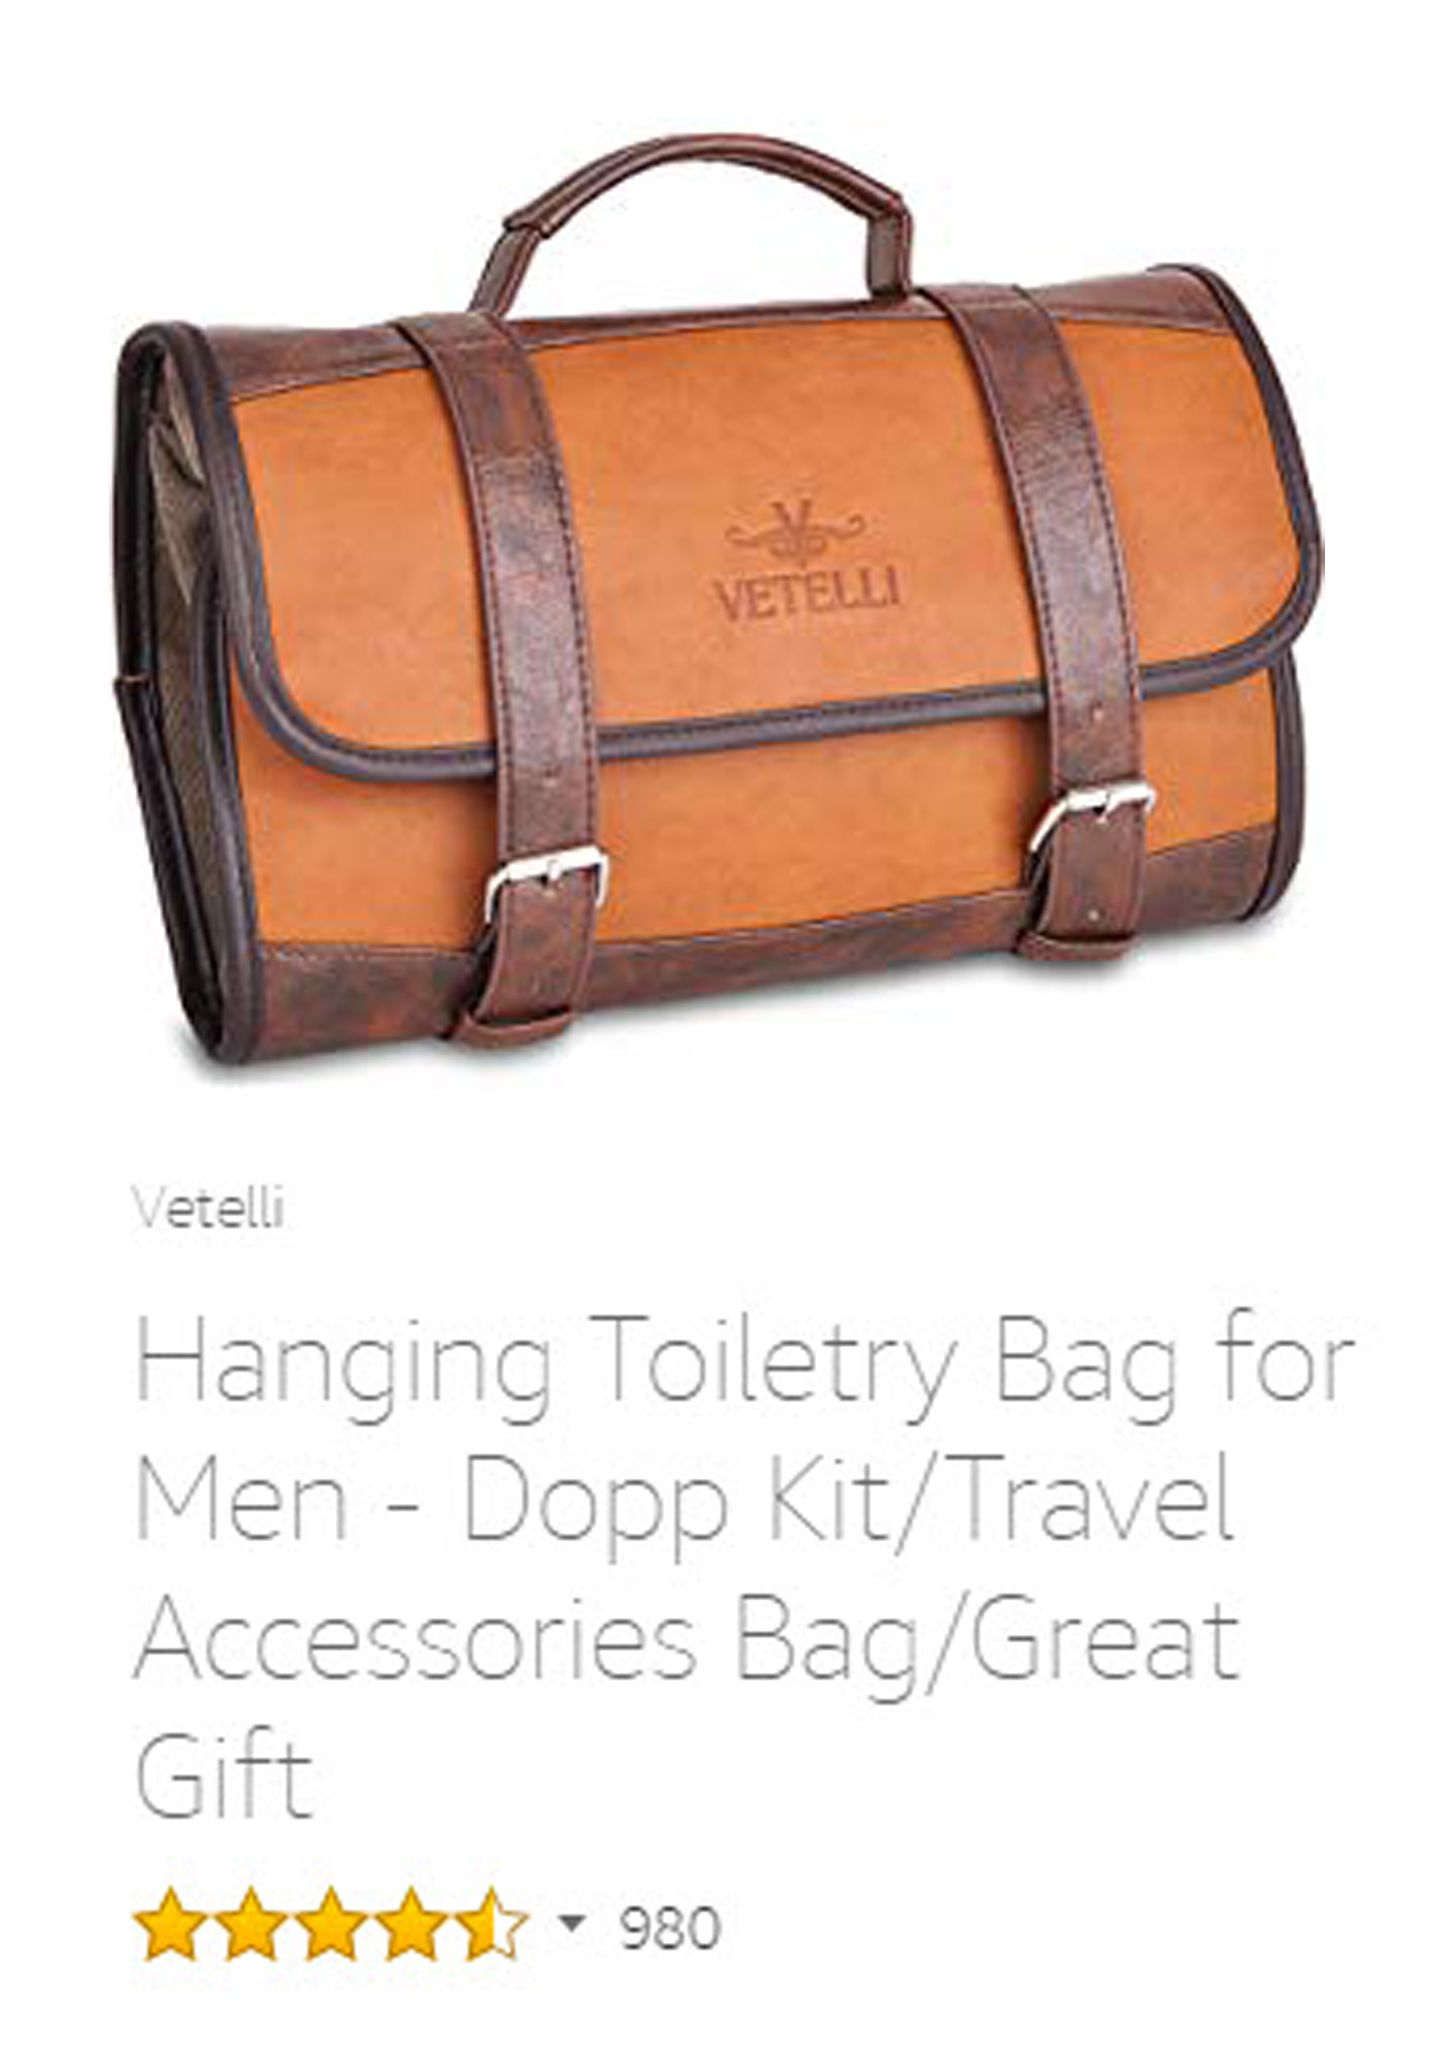 e99e0829a665 Vetelli Hanging Toiletry Bag for Men - Dopp Kit Travel Accessories Bag Great  Gift.